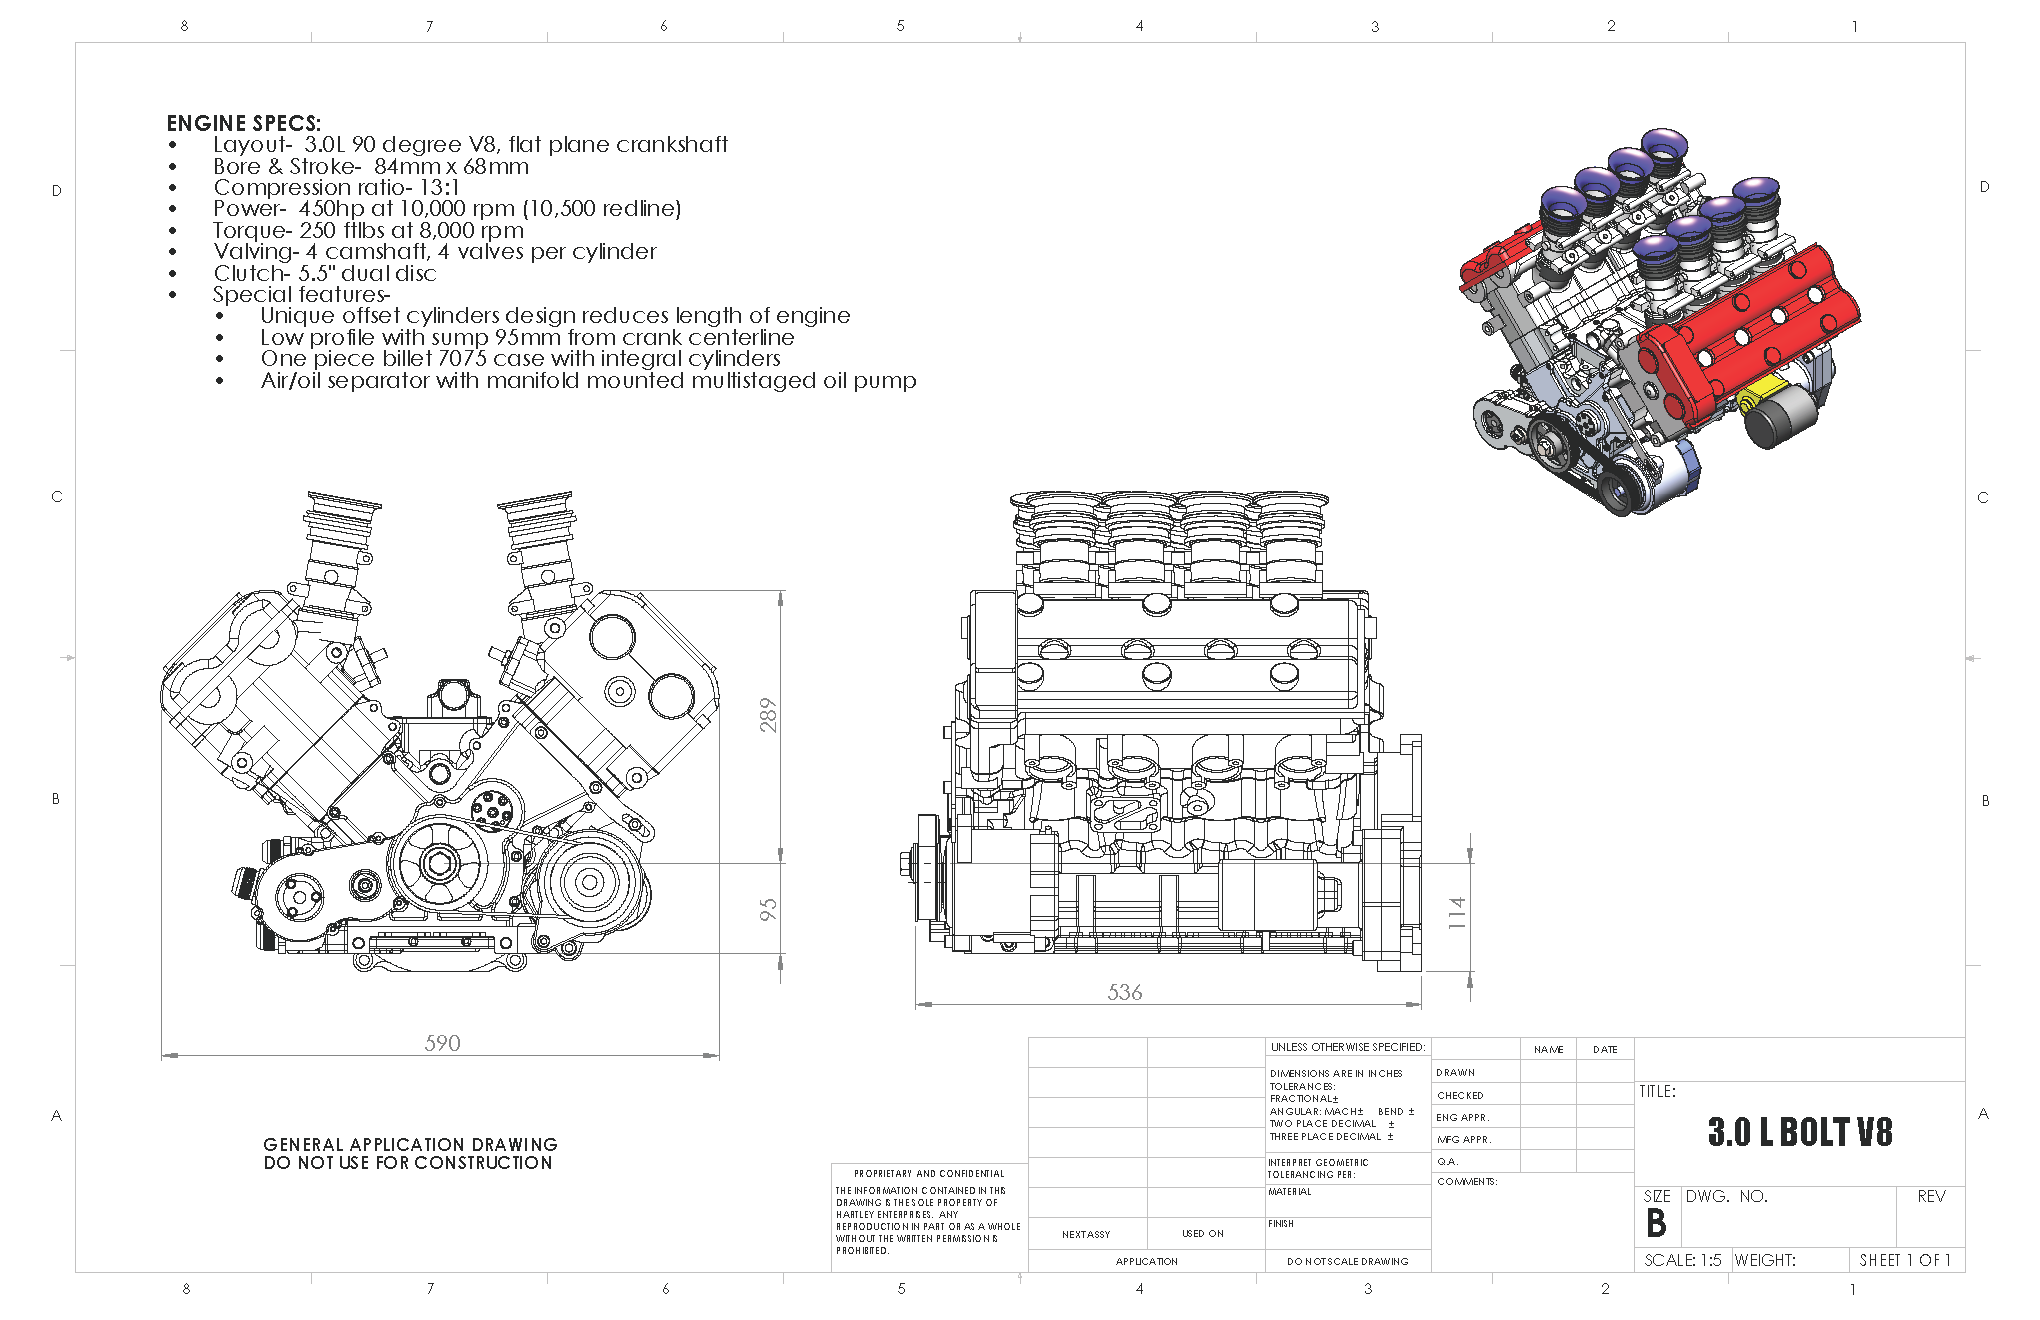 Diagrams#13601020: Lotus V8 Engine Diagram – Lotus Esprit ...